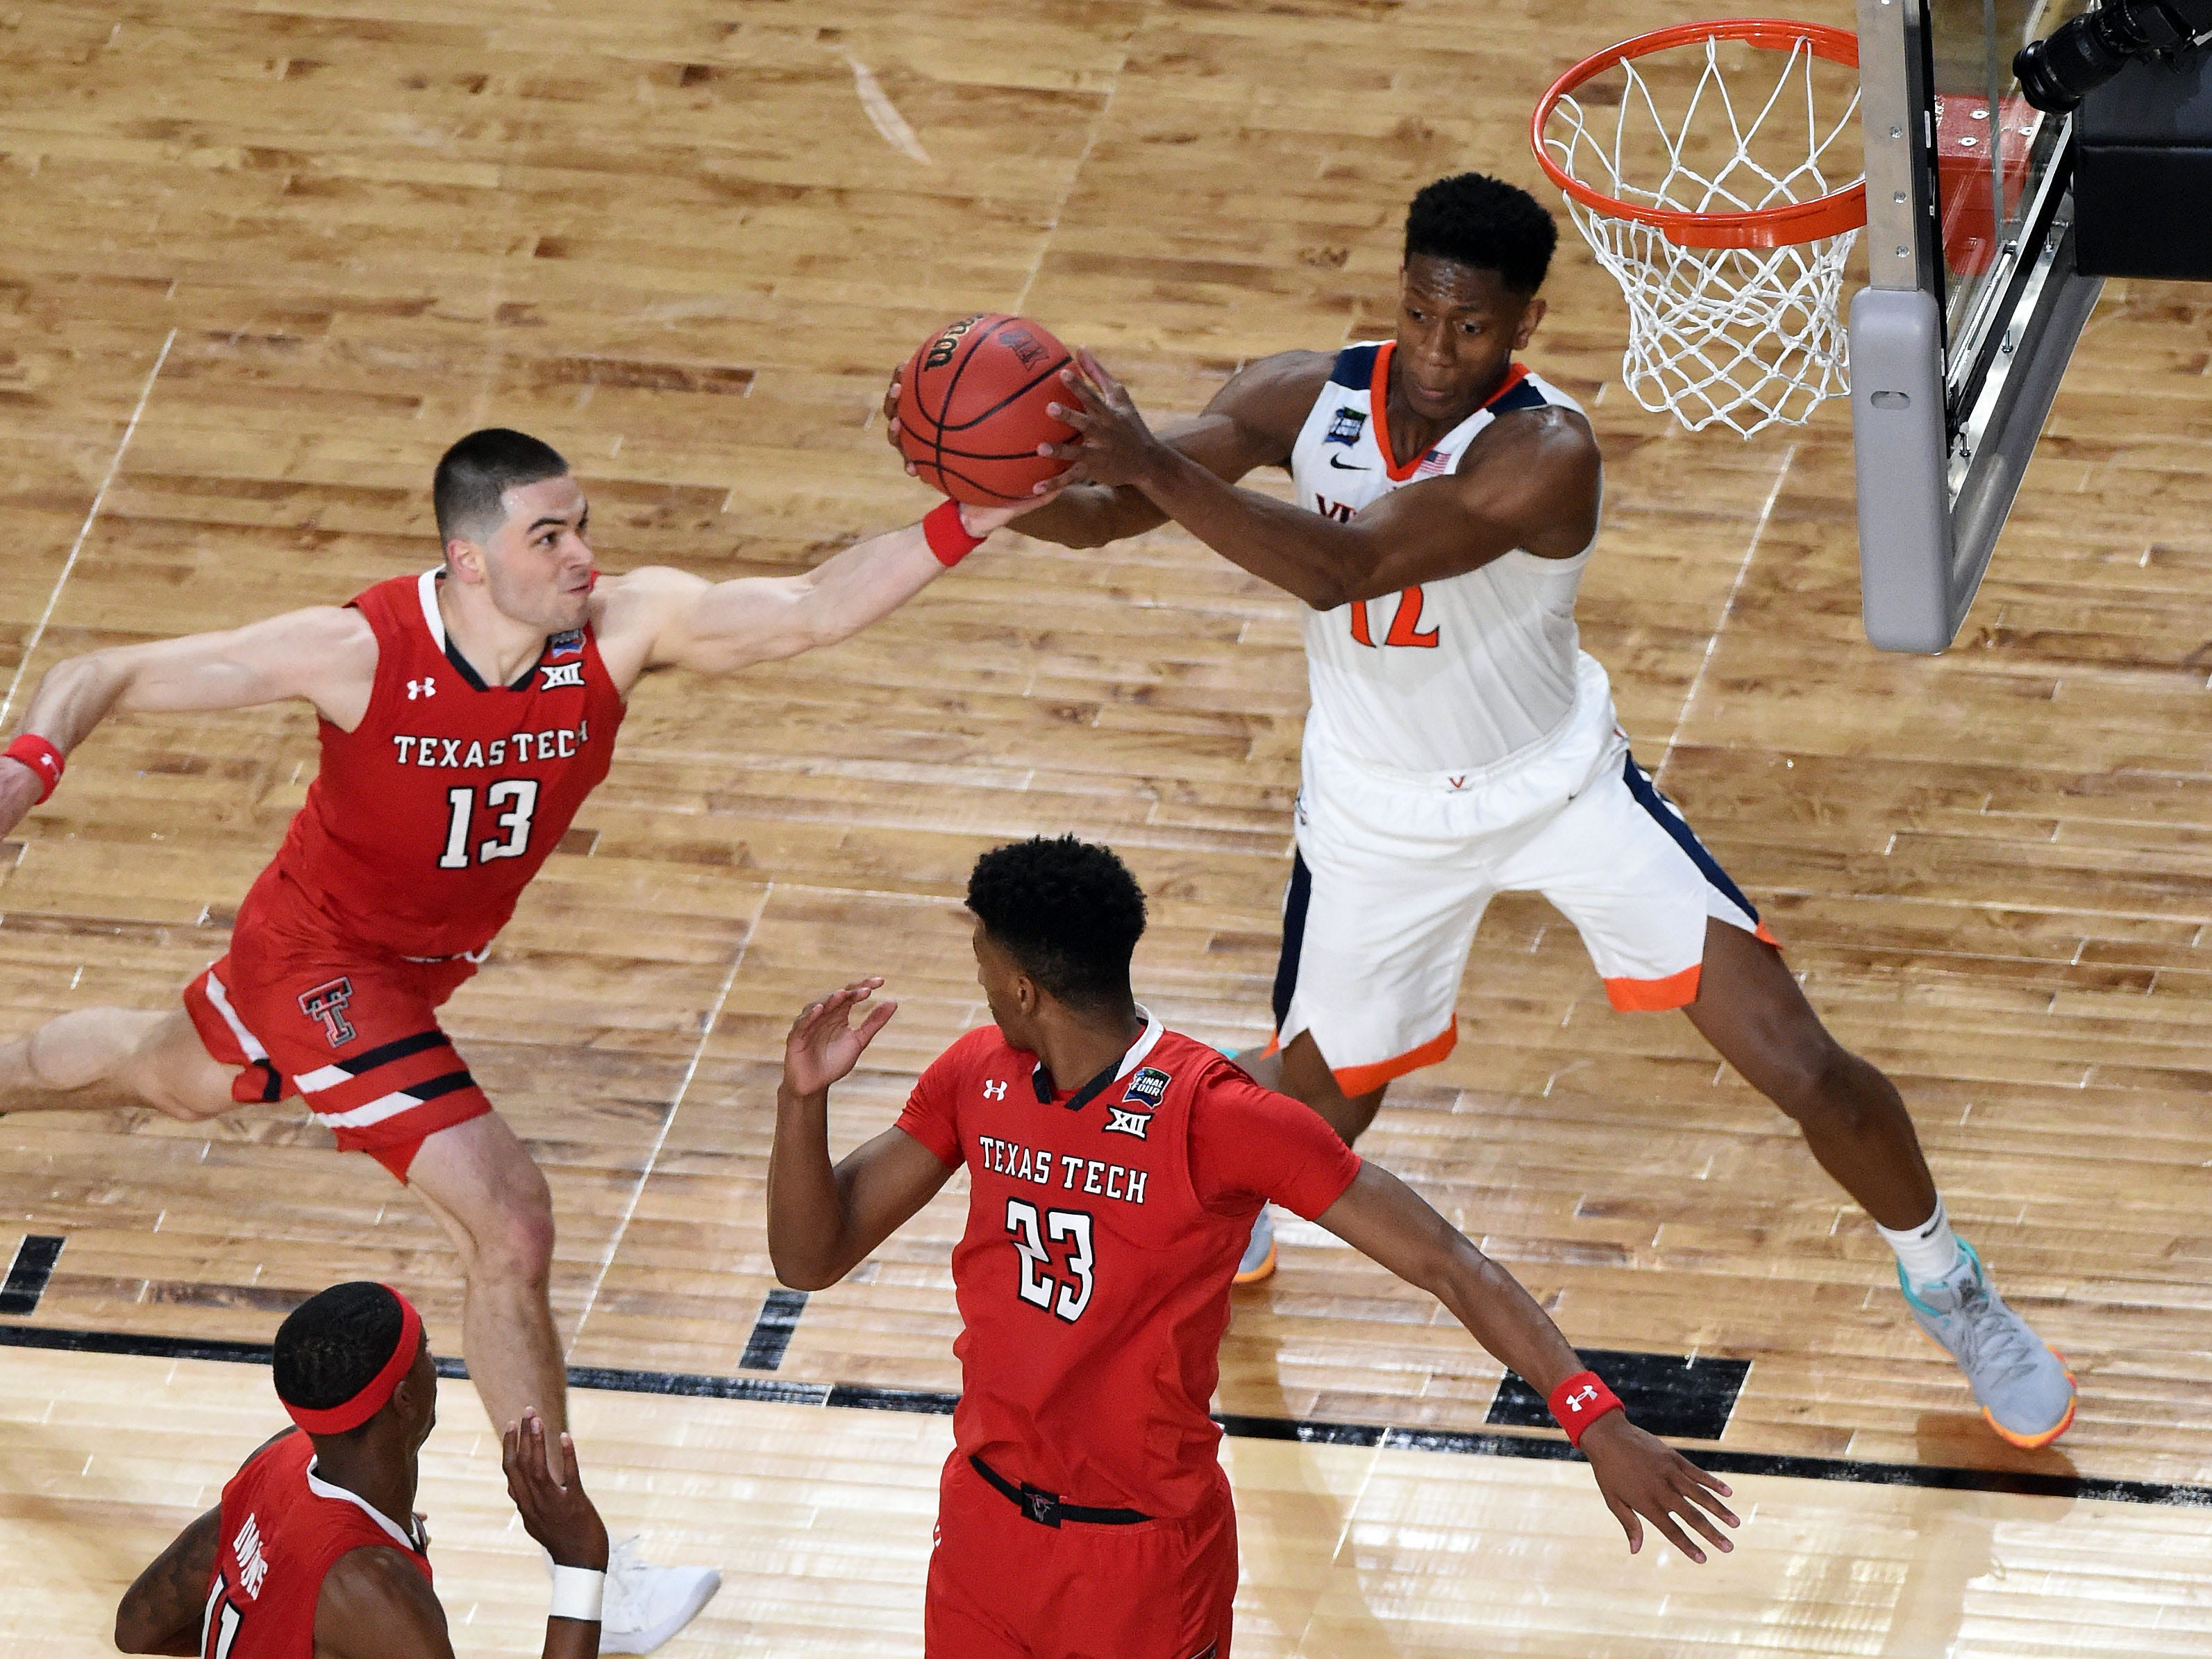 Texas Tech's Matt Mooney (13) defends a pass intended for Virginia's De'Andre Hunter during the second half in the championship game.